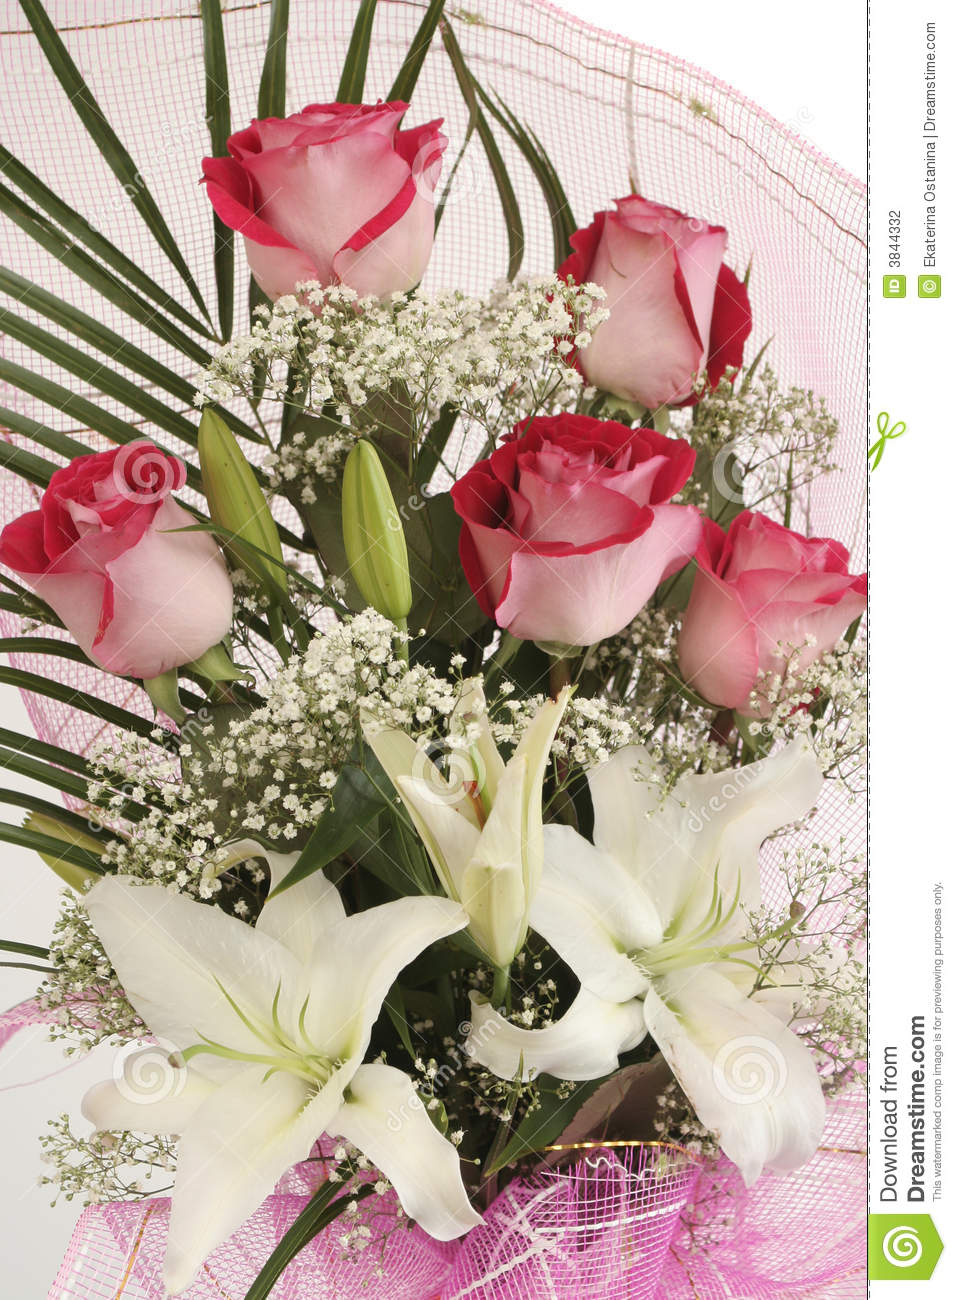 Beau bouquet des roses roses photo stock image 3844332 for Bouquet de rose